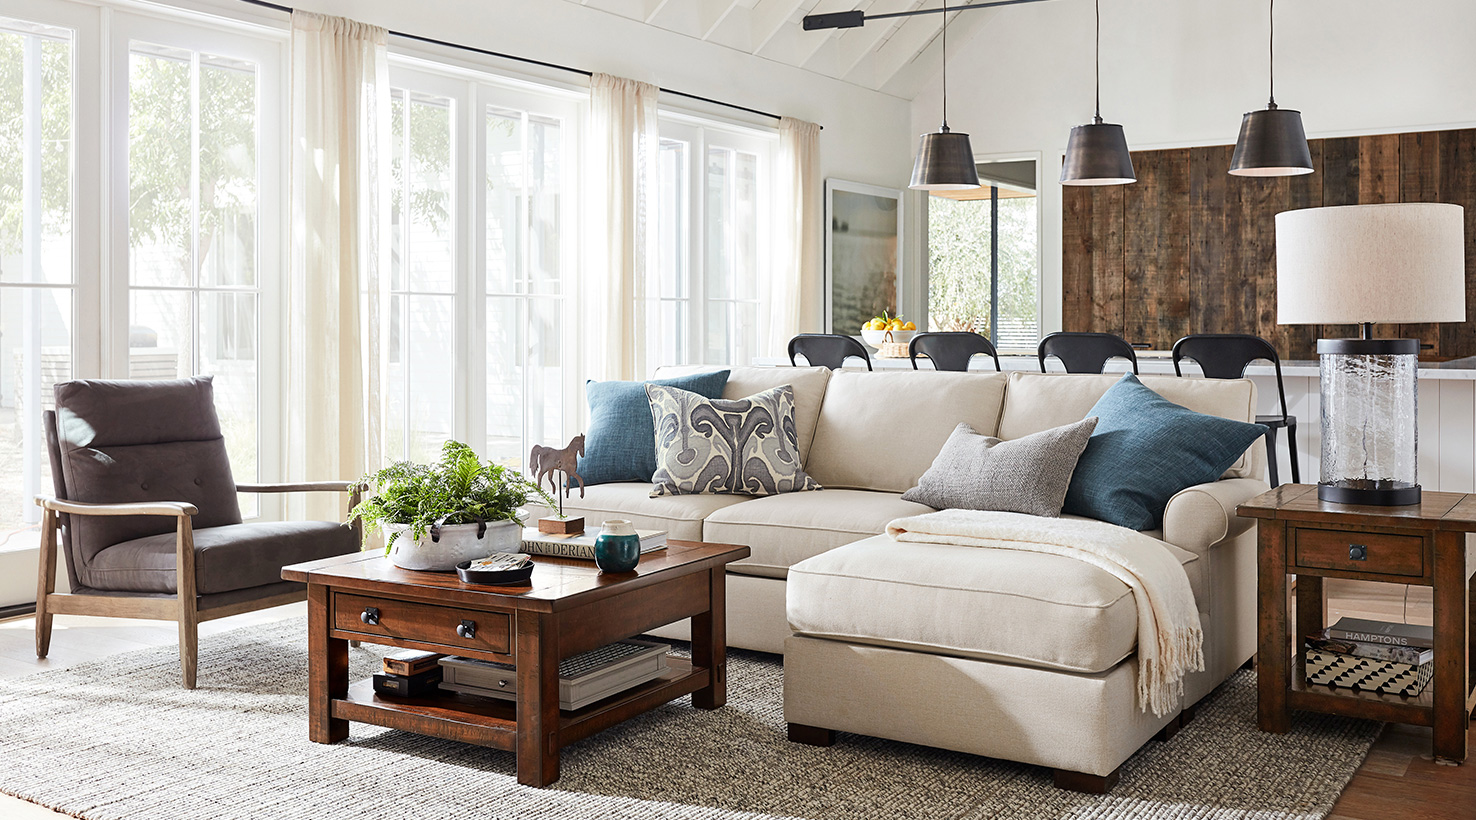 Living Room Vs Great Room Living Room Paint Color Ideas Inspiration Gallery Sherwin Williams